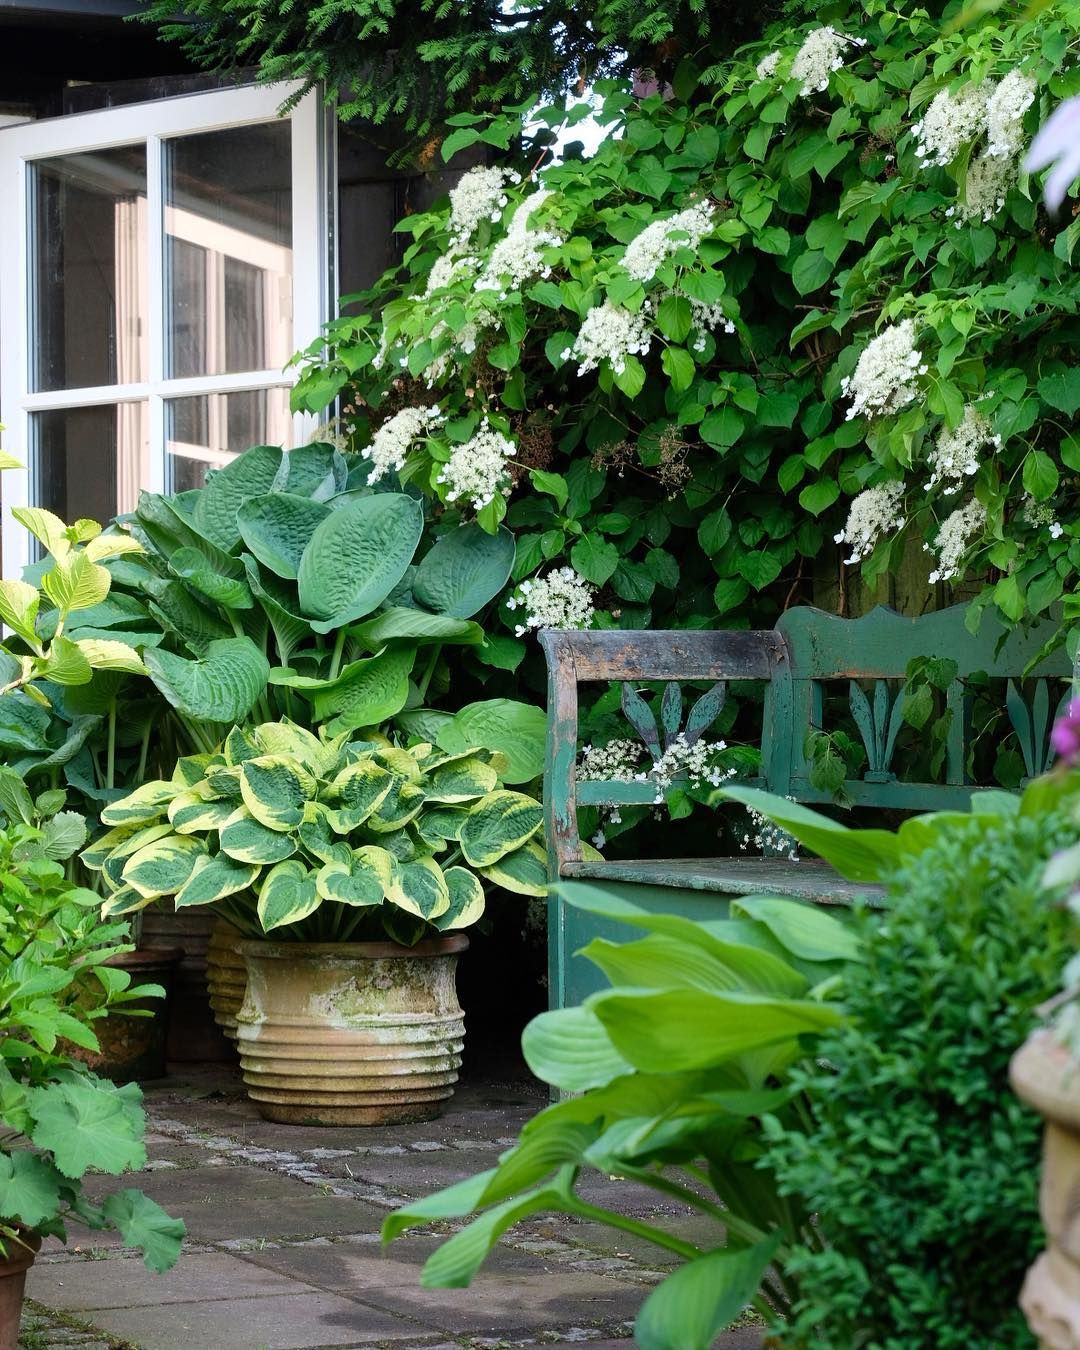 Climbing hydrangeas and potted hostas 💚outside door is part of Hosta gardens -